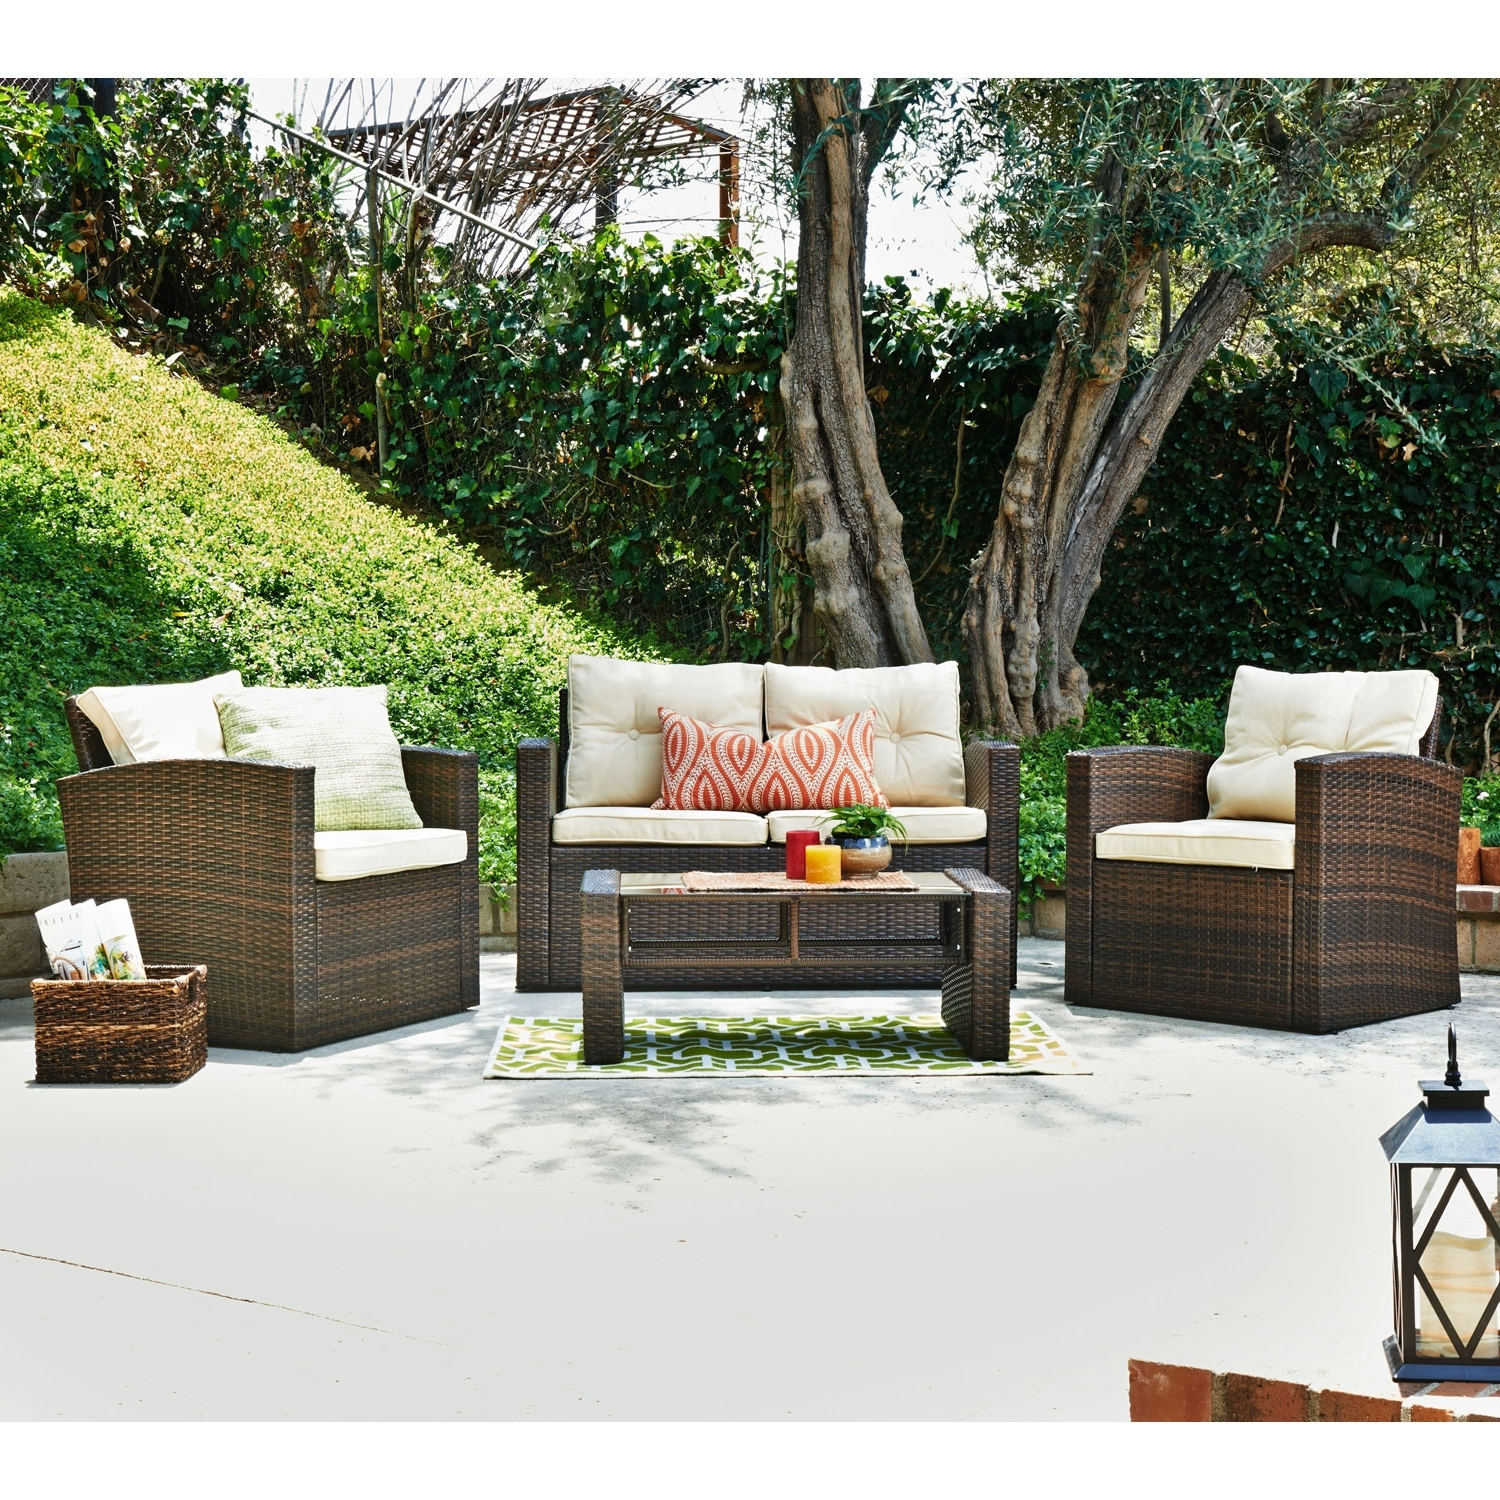 Most Recent Patio Conversation Sets At Target Pertaining To Thy Hom Roatan Tan 4 Piece Outdoor Wicker Conversation Set (View 18 of 20)